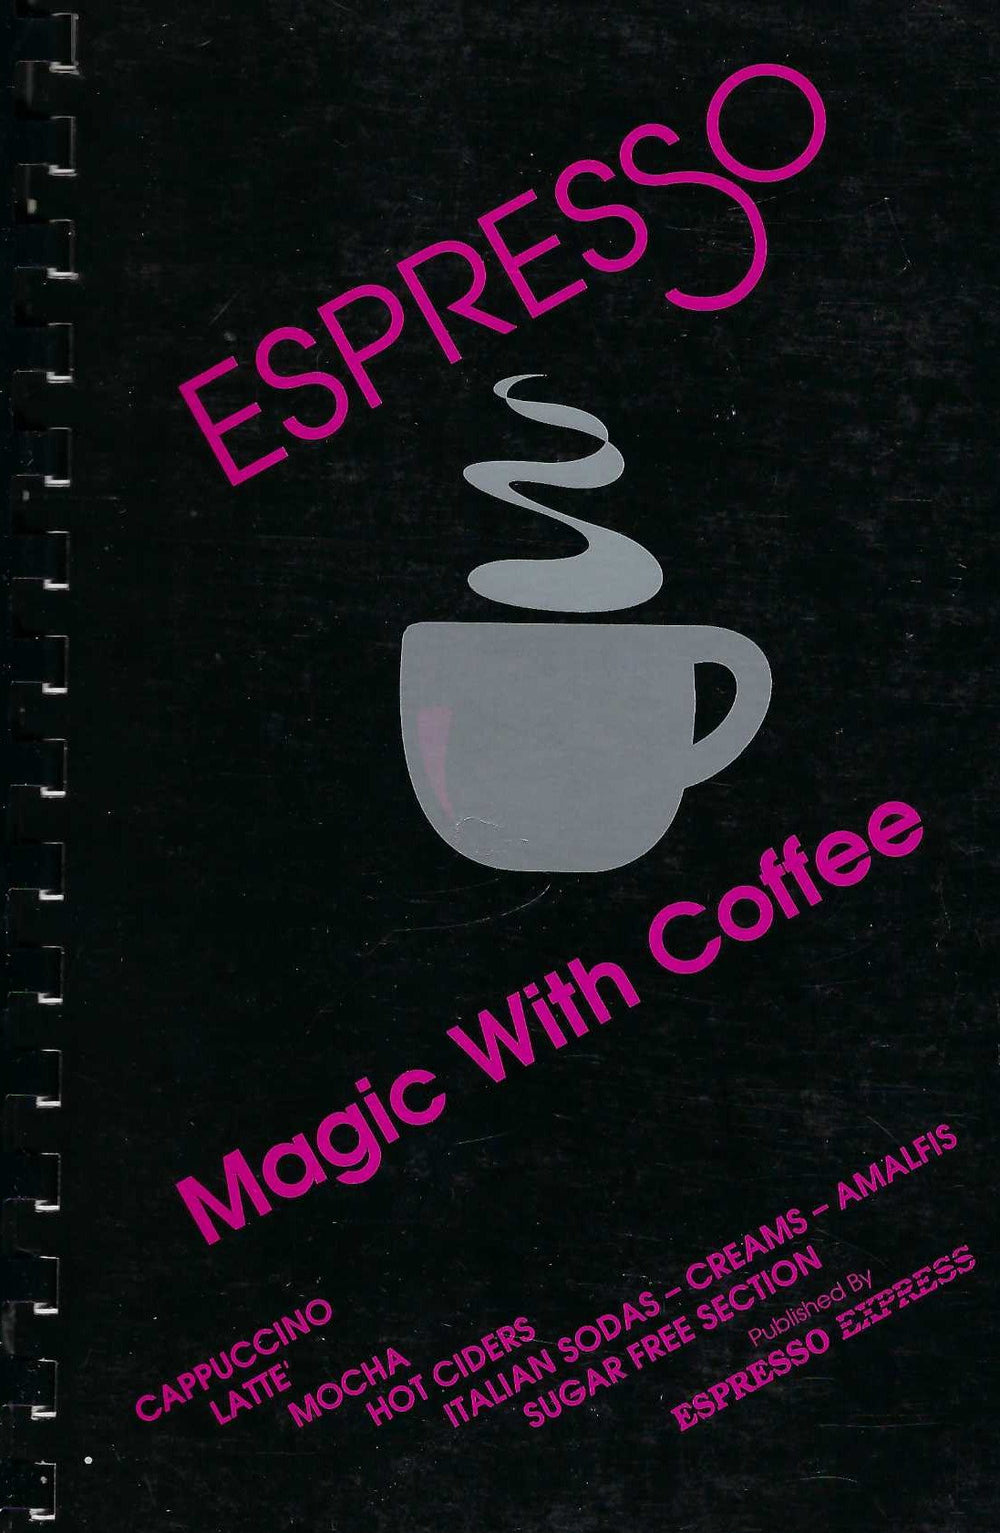 Espresso Magic with Coffee  by Quinton & Charloline Vause  (Spiral)  1993